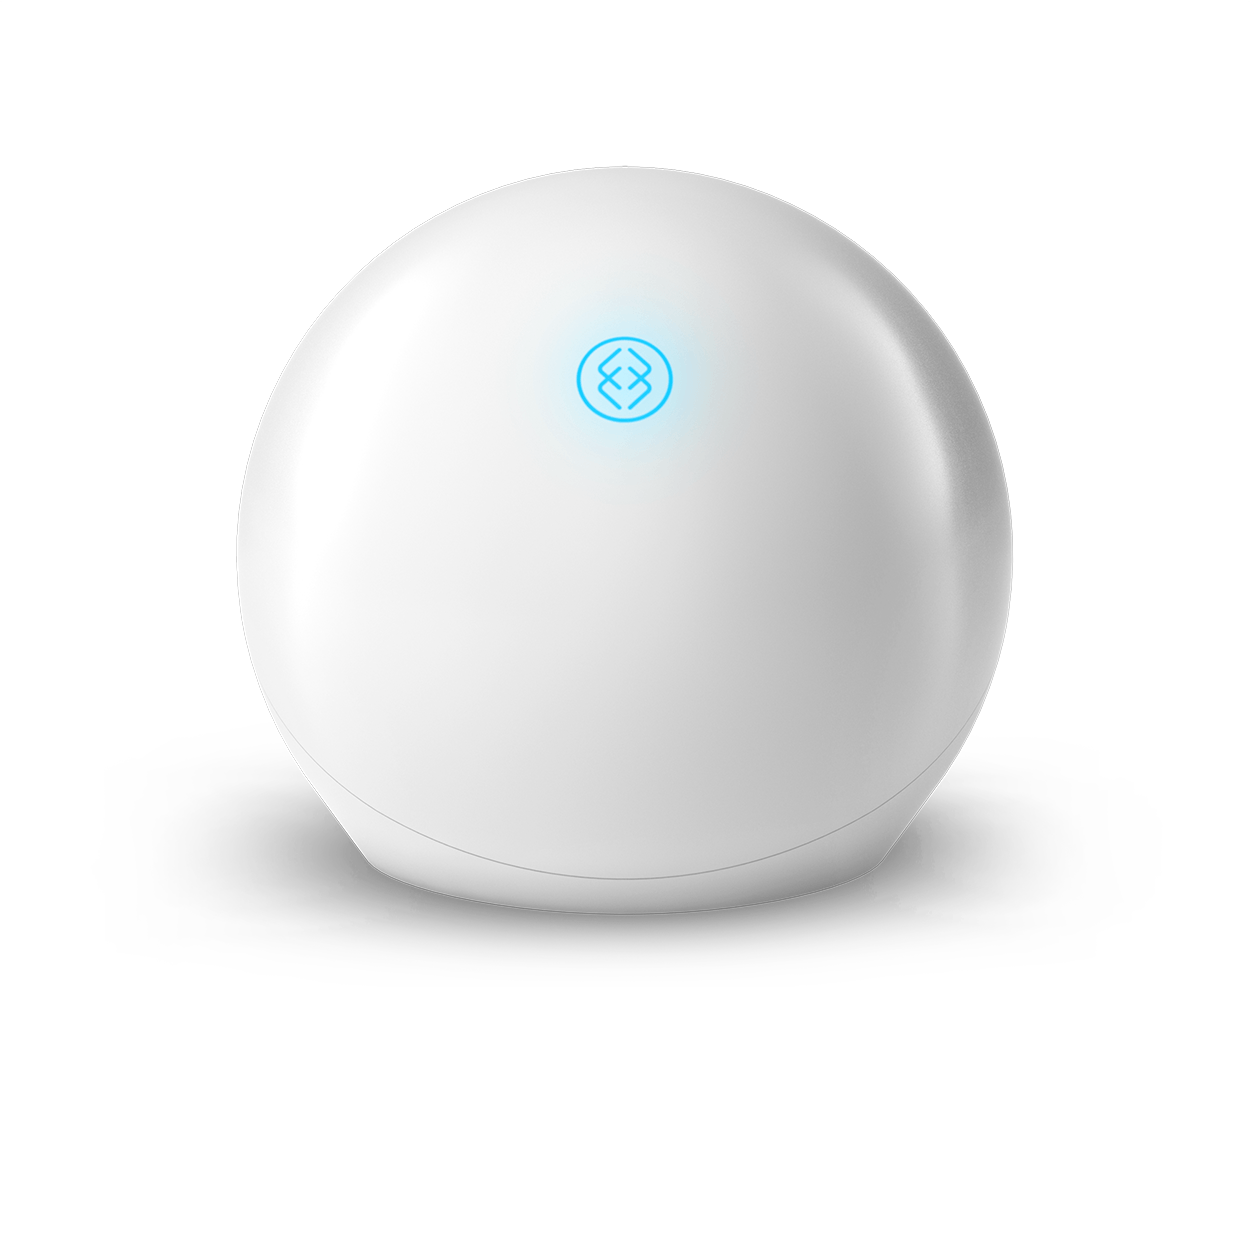 Orb_Front_1250x1250px.png